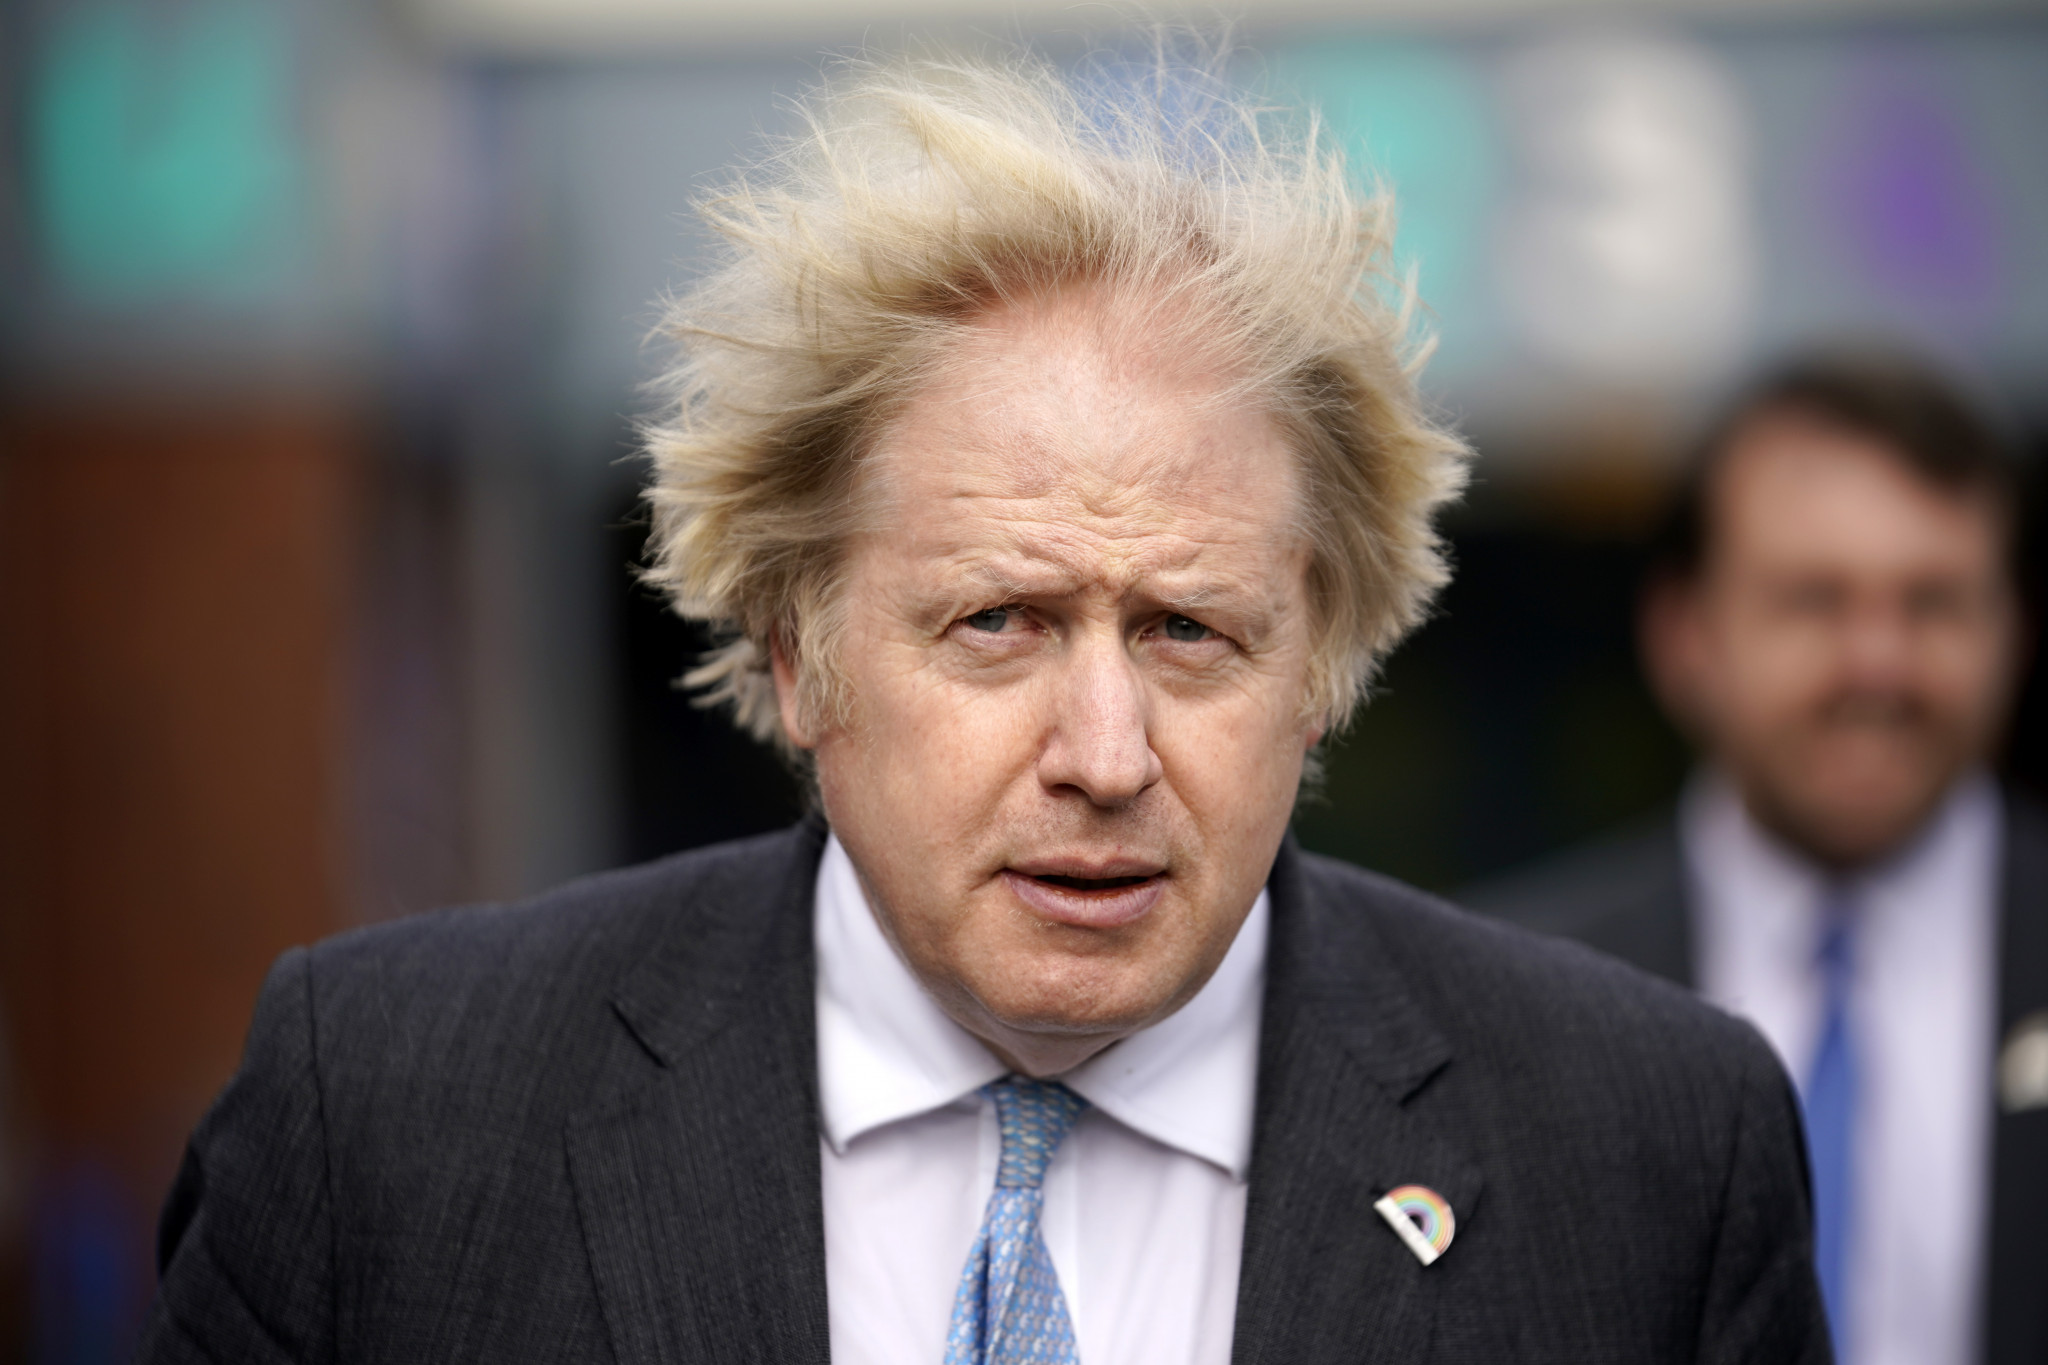 UK Prime Minister Boris Johnson has backed a bid for the 2030 FIFA World Cup ©Getty Images